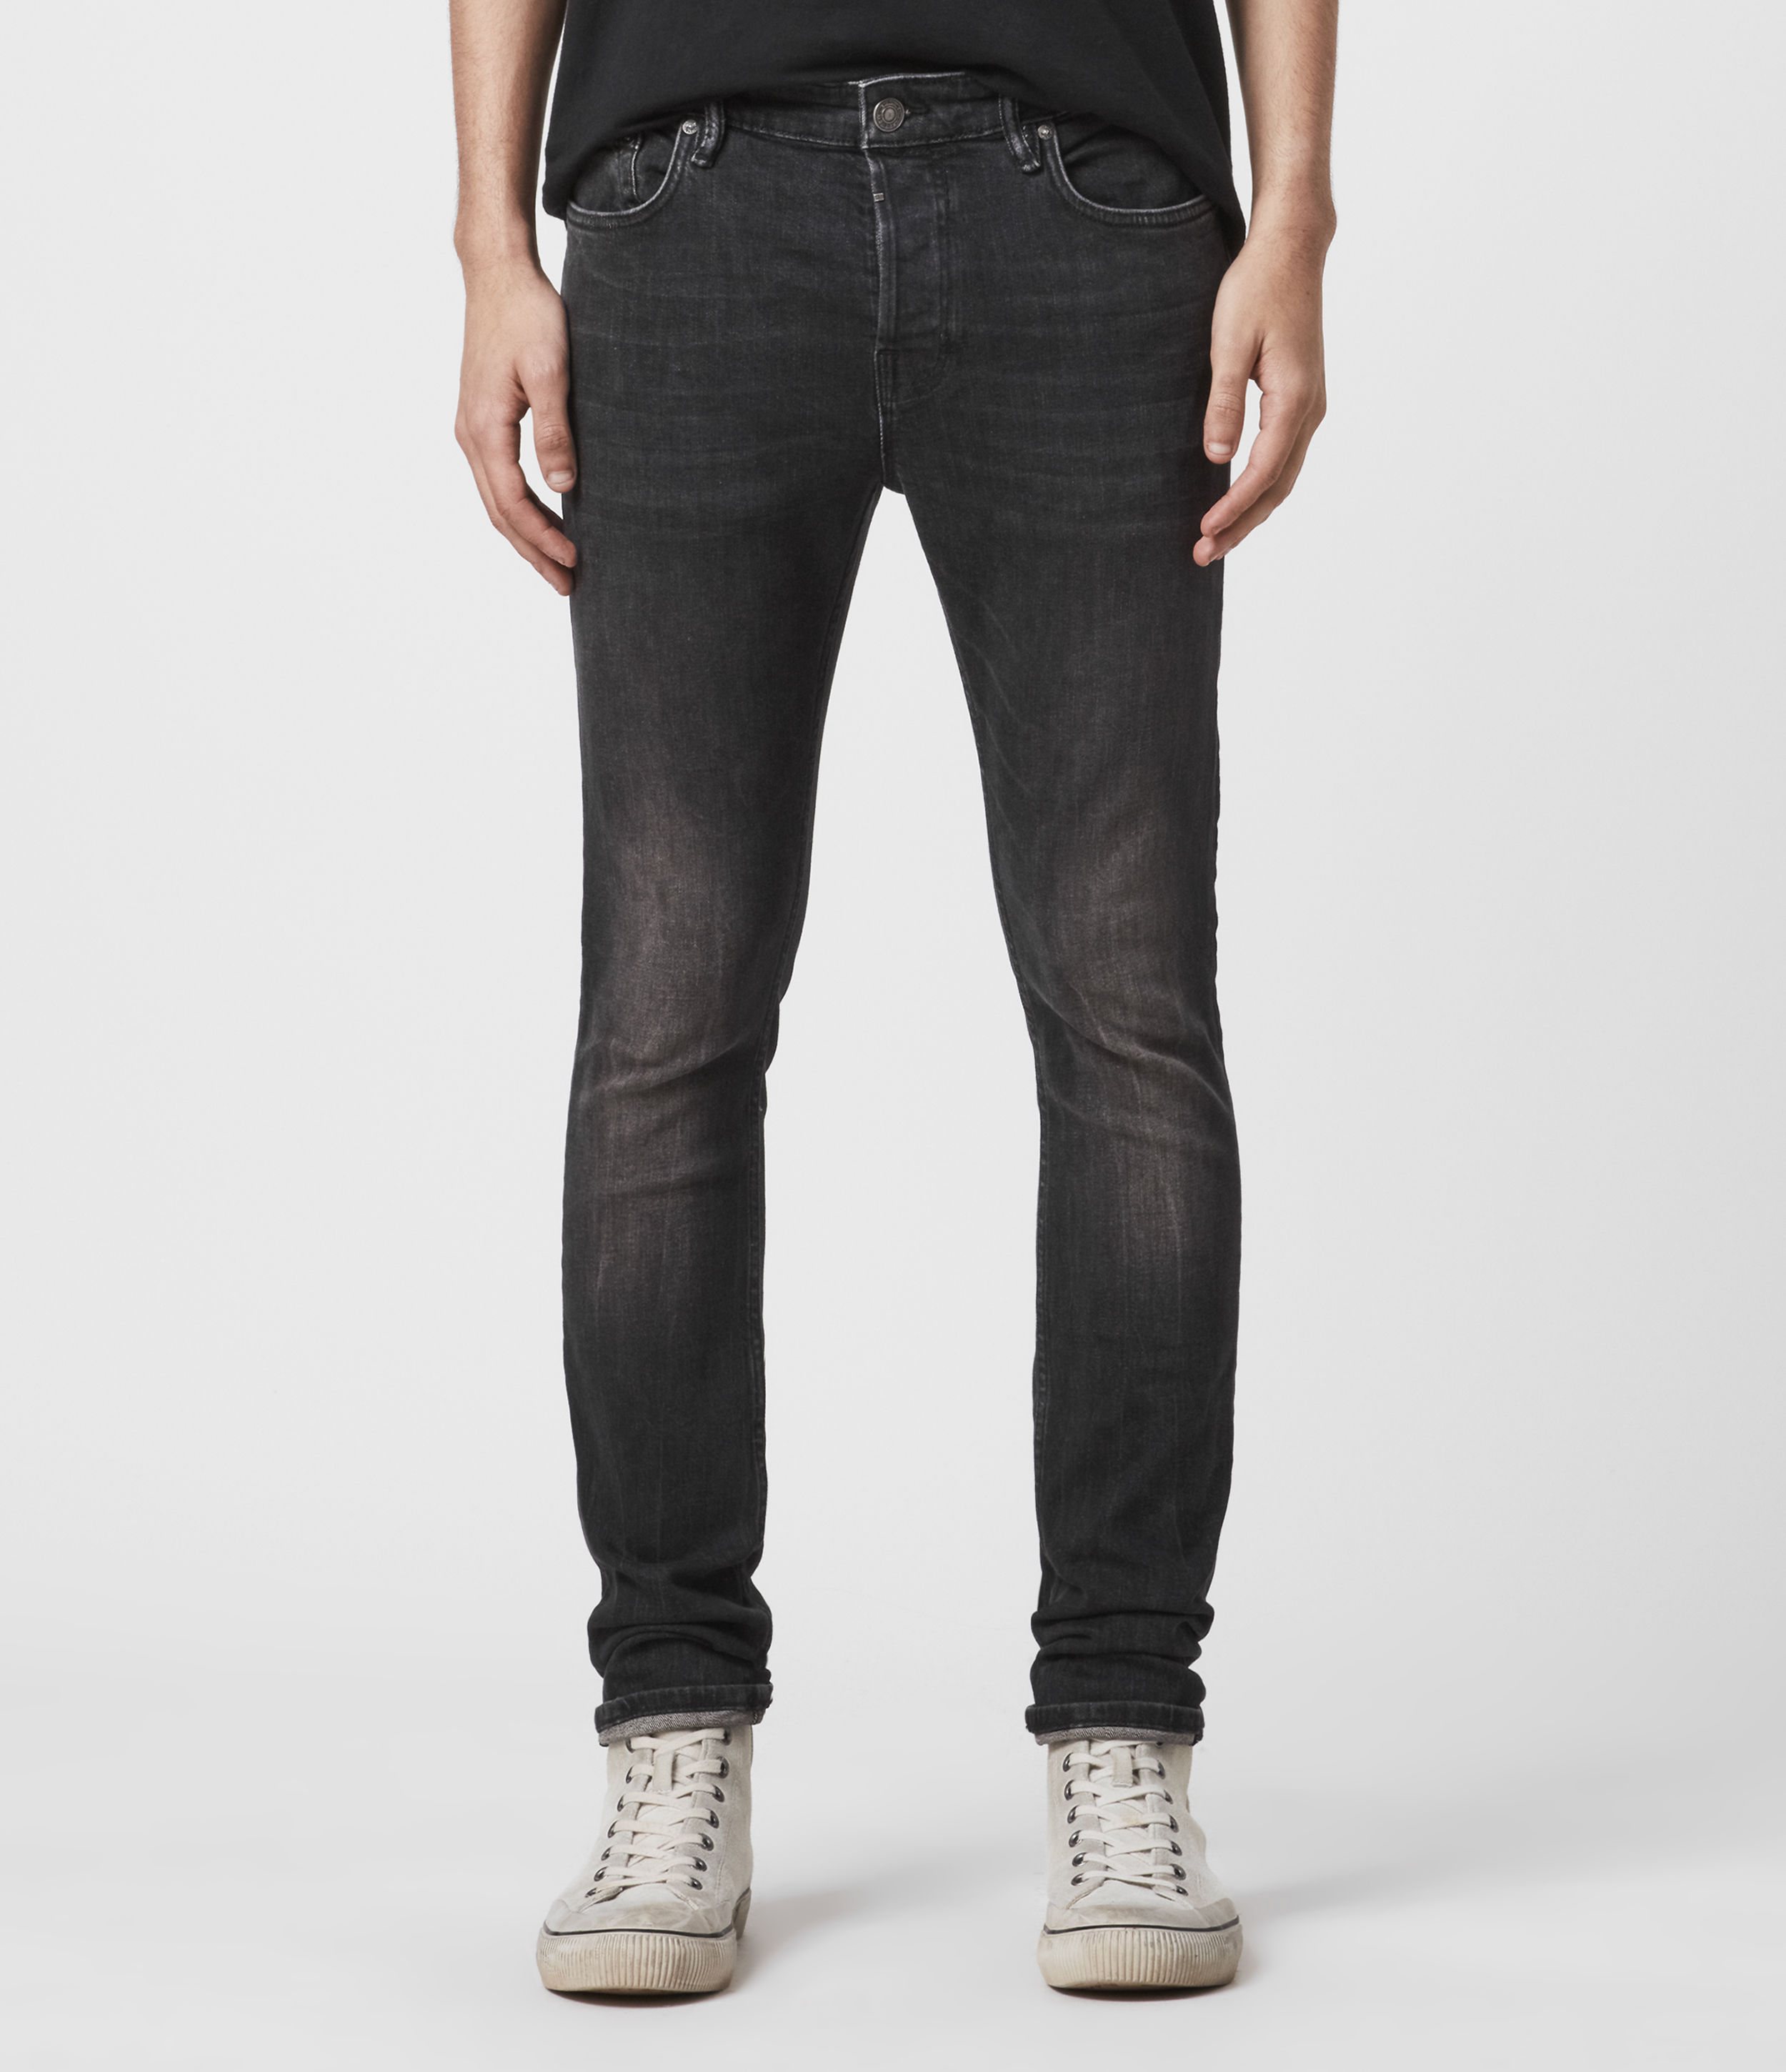 AllSaints Men's Cotton Cigarette Skinny Jeans, Black, Size: 30